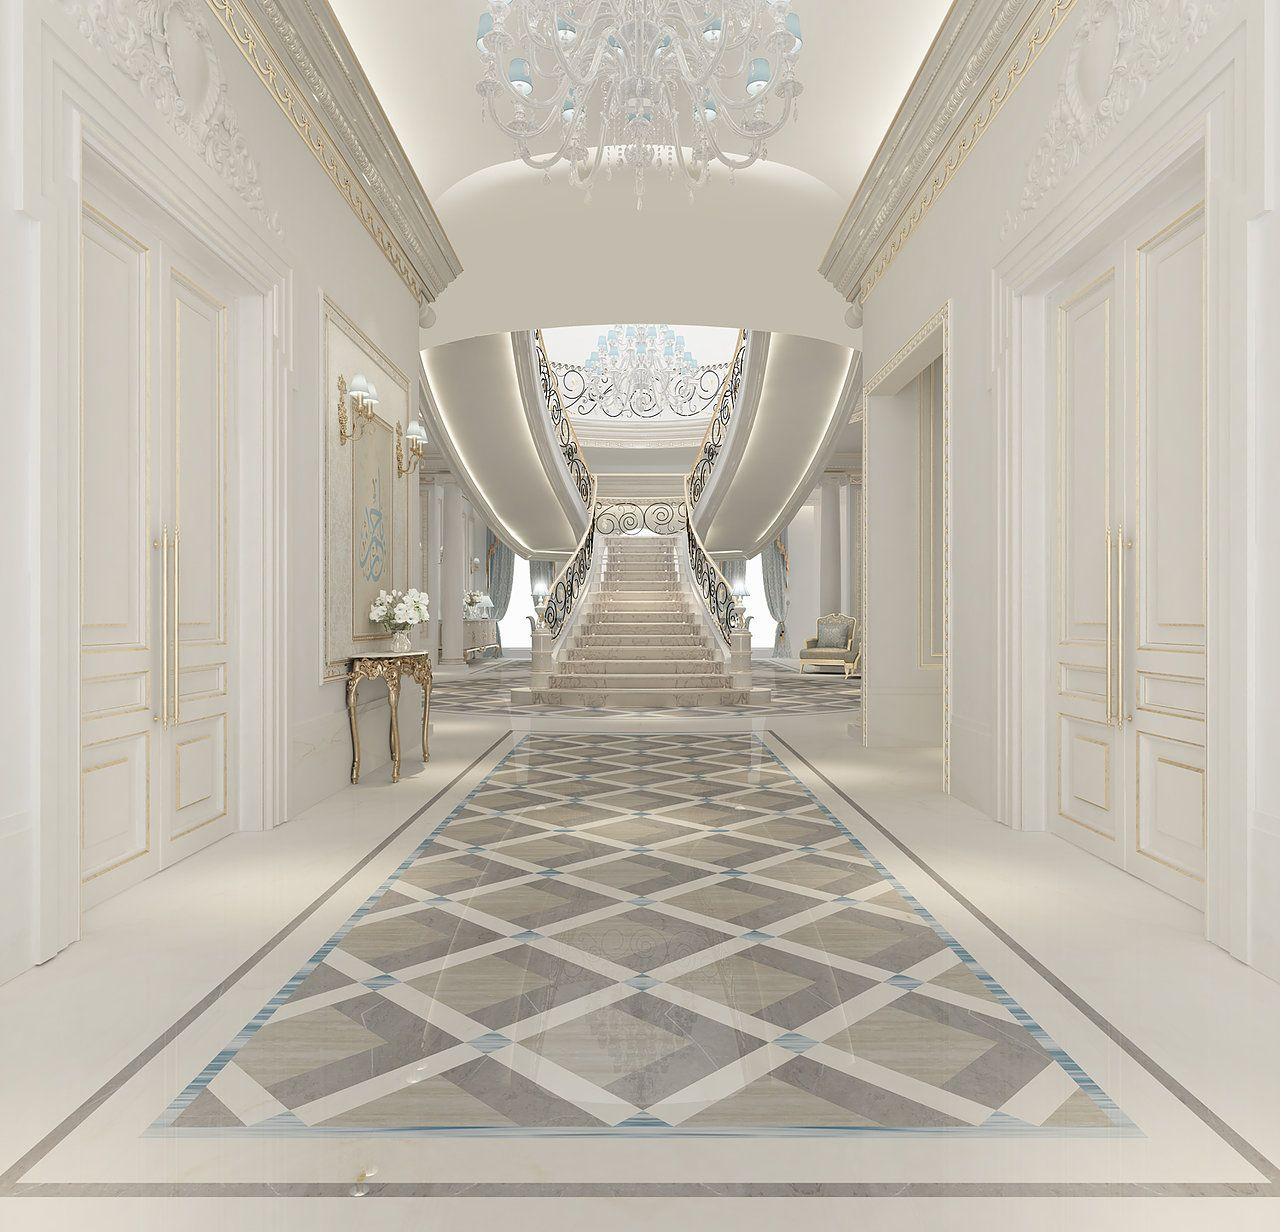 Interior Design Package Includes Majlis Designs, Dining